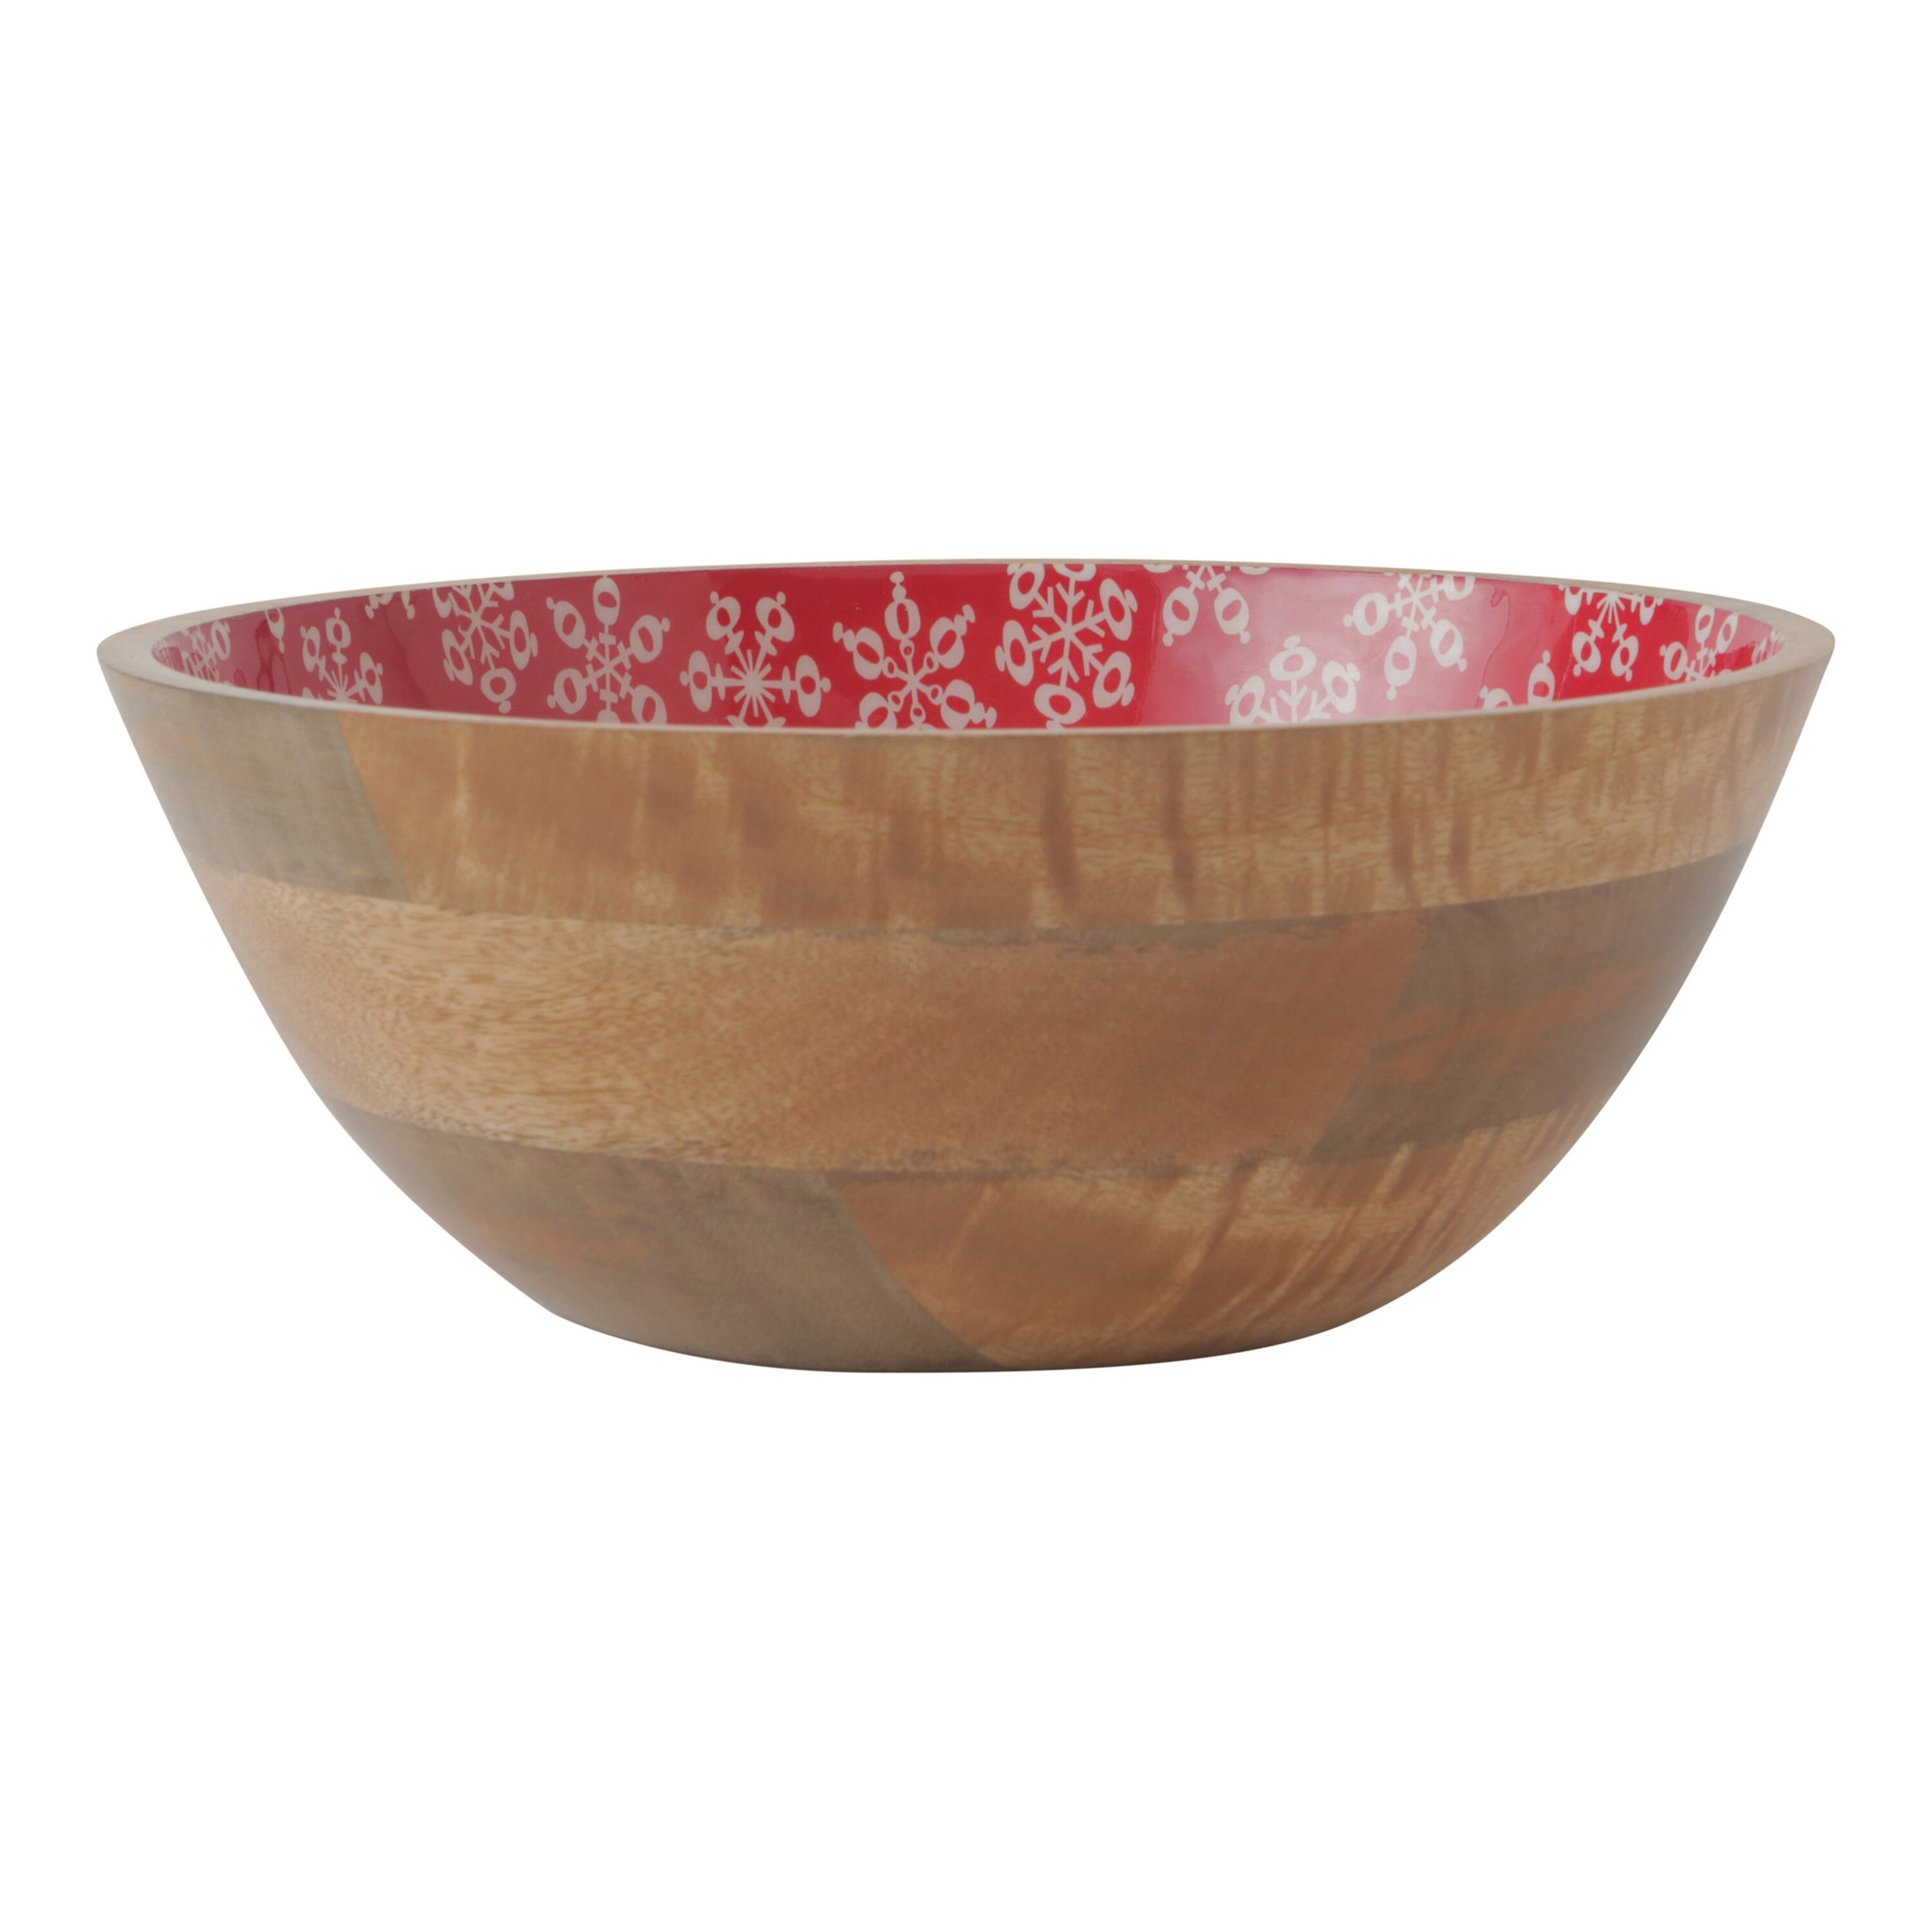 Hallmark Home amp Gifts Holiday Serving Bowl amp Reviews Wayfair : Holiday Mango Wood Serving Bowl 1MJB578 from www.wayfair.com size 3000 x 3000 jpeg 269kB